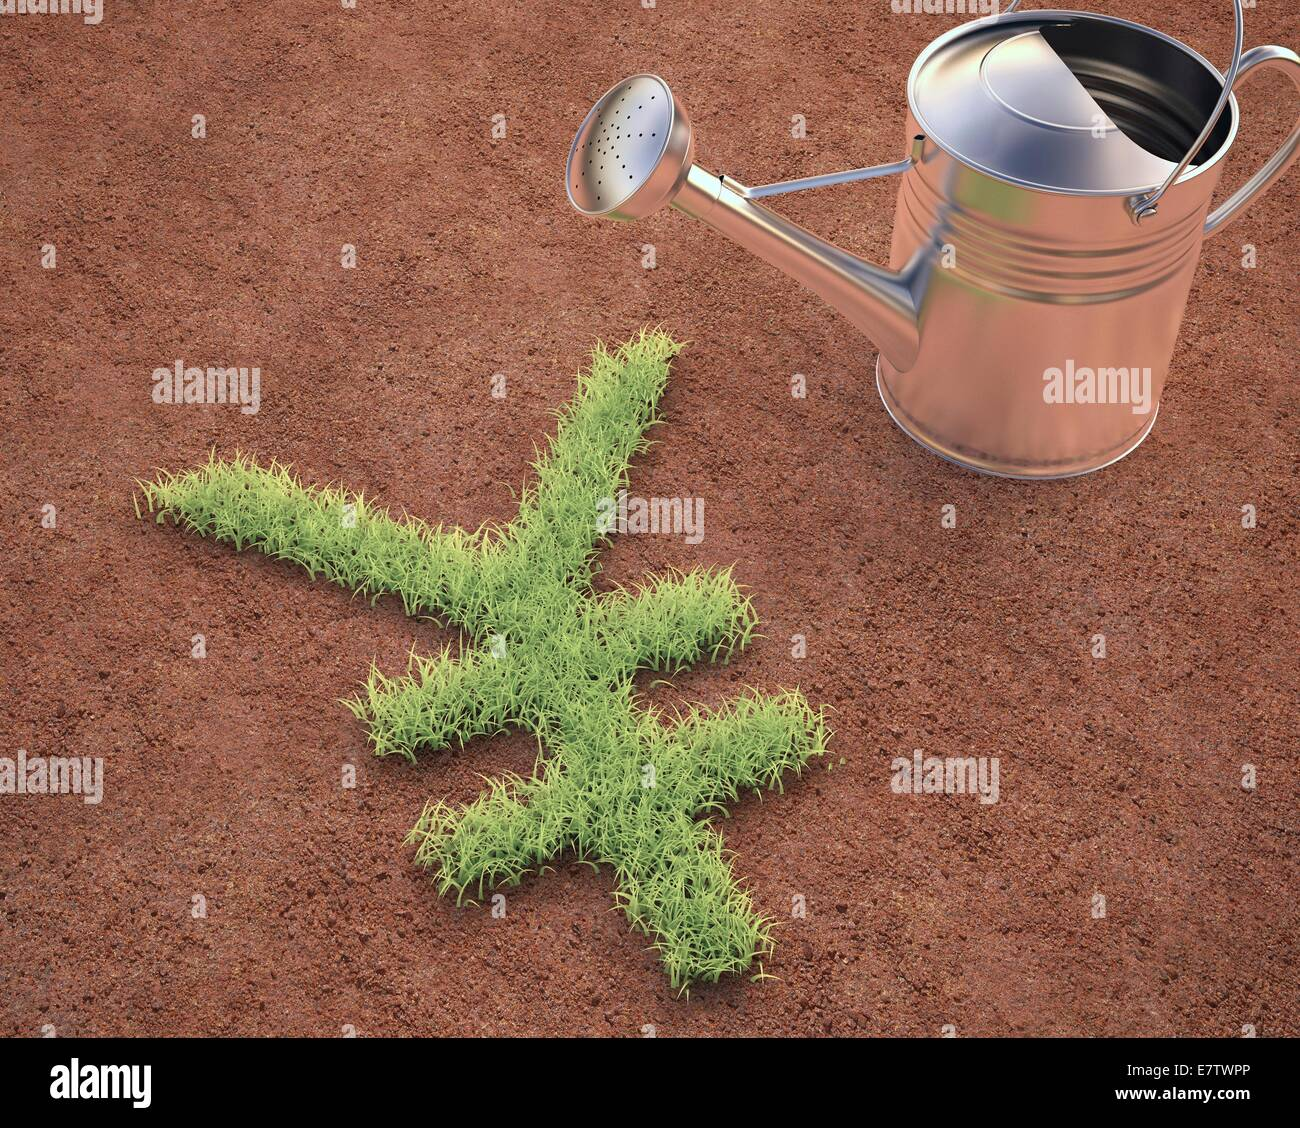 Japanese yen sign and watering can, conceptual artwork. - Stock Image